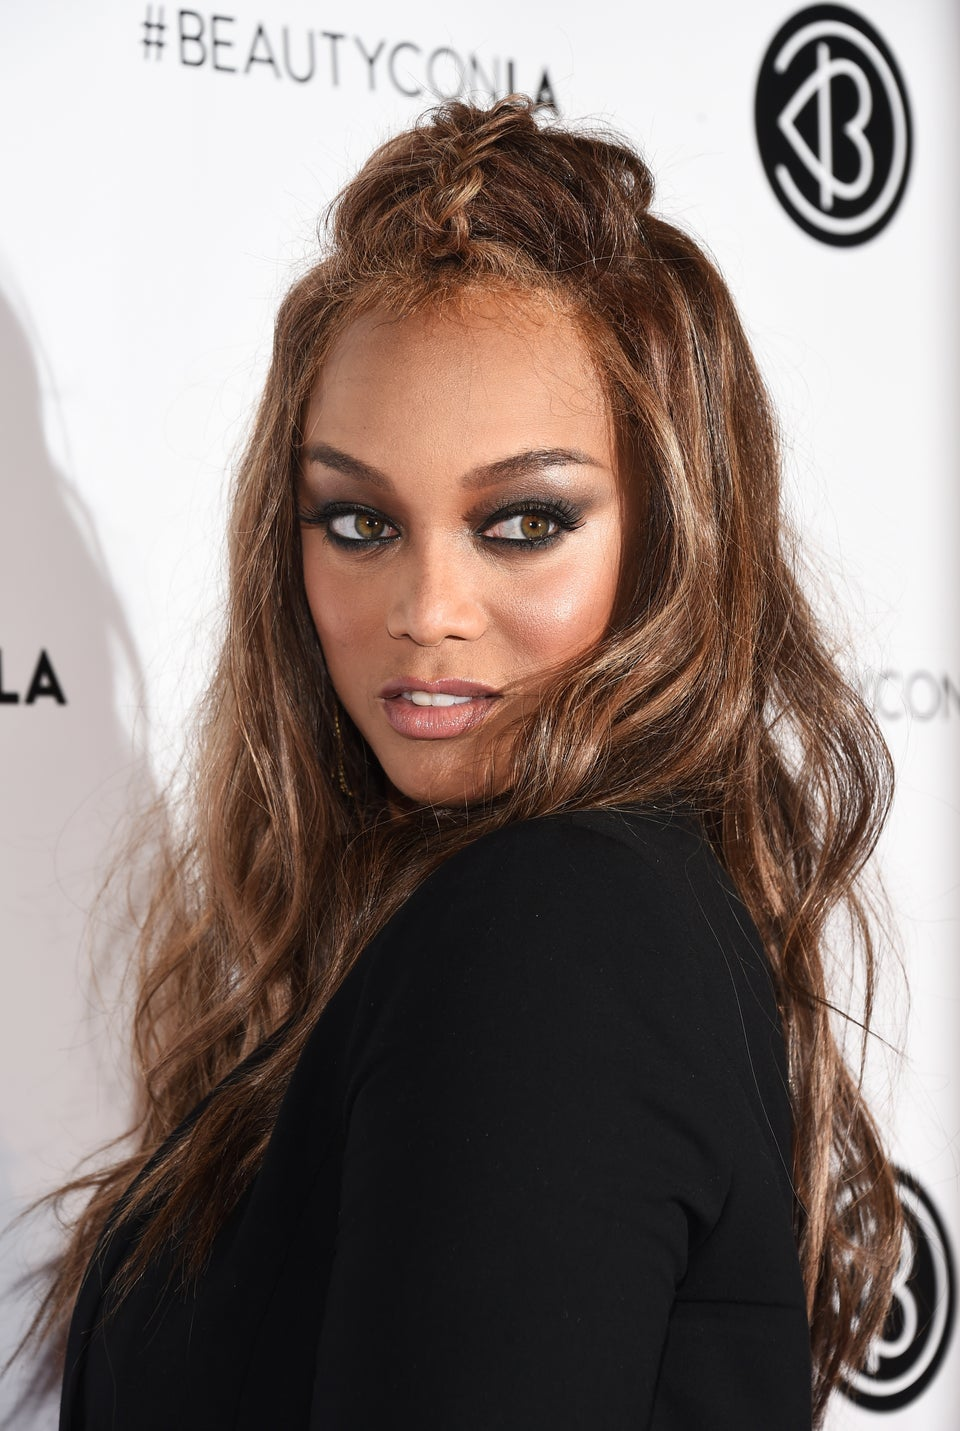 Tyra Banks is Heading Back to 'America's Next Top Model'